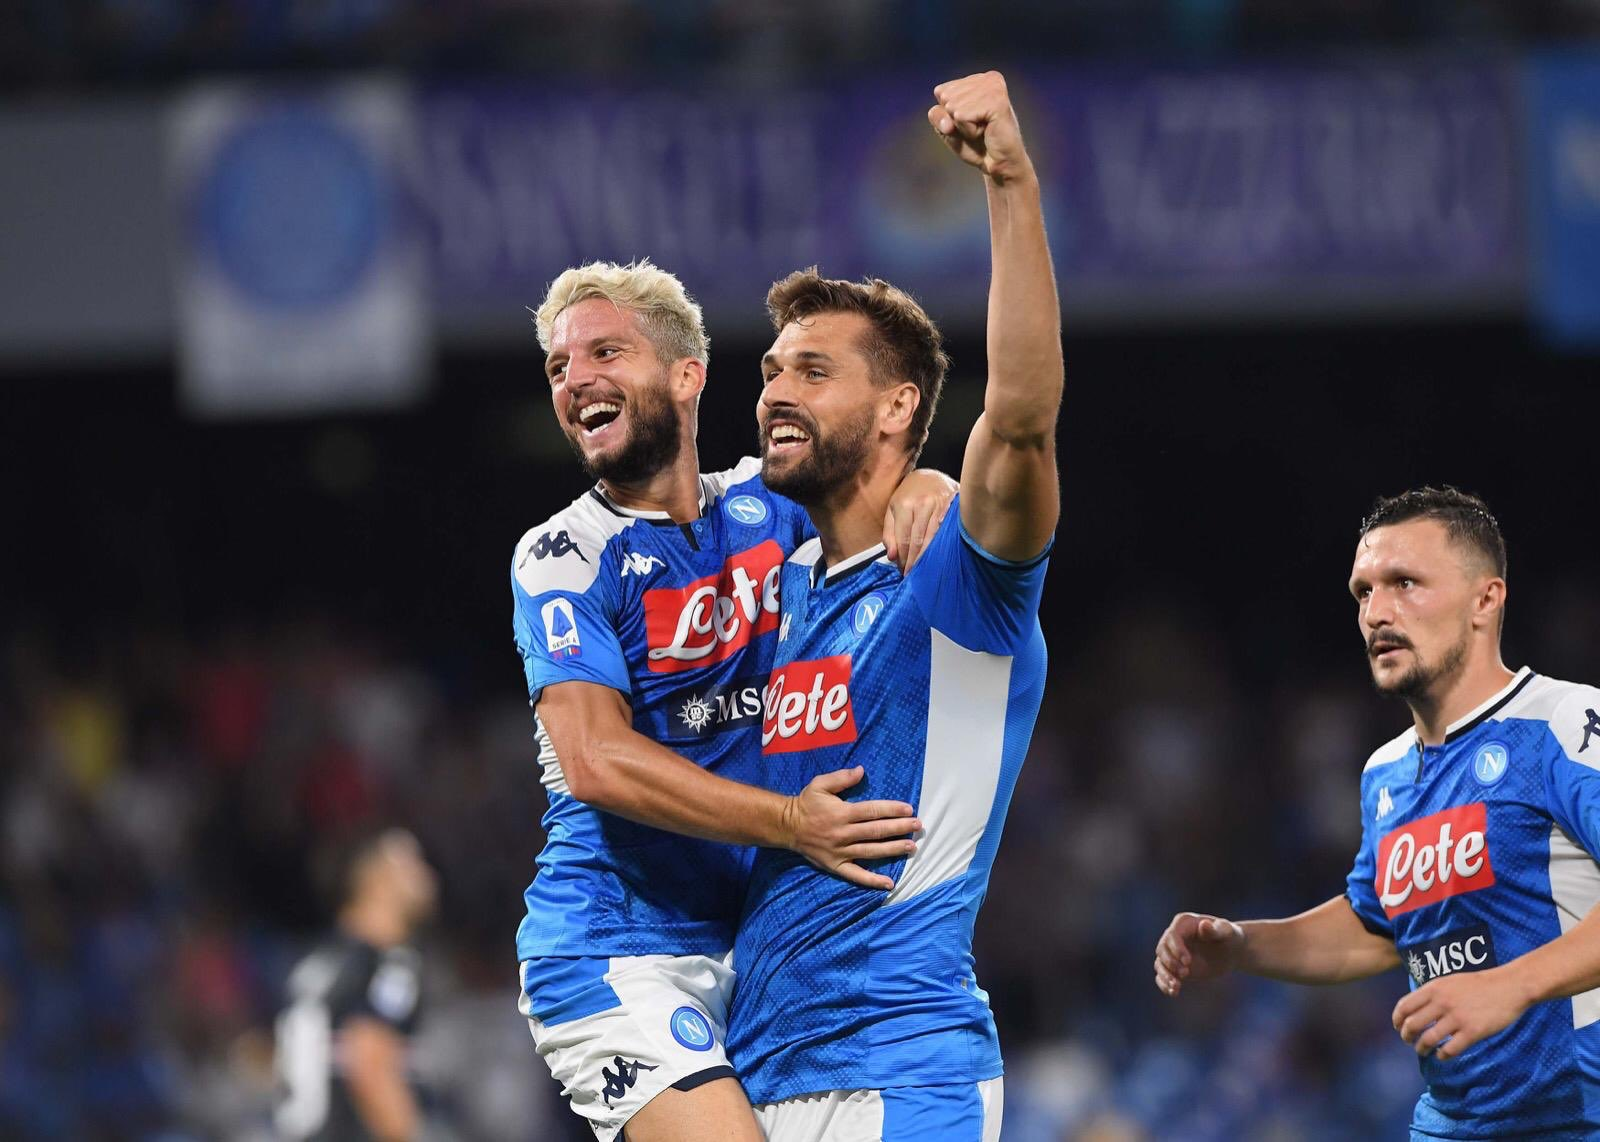 Napoli vs Sampdoria Highlights - 14 September 2019